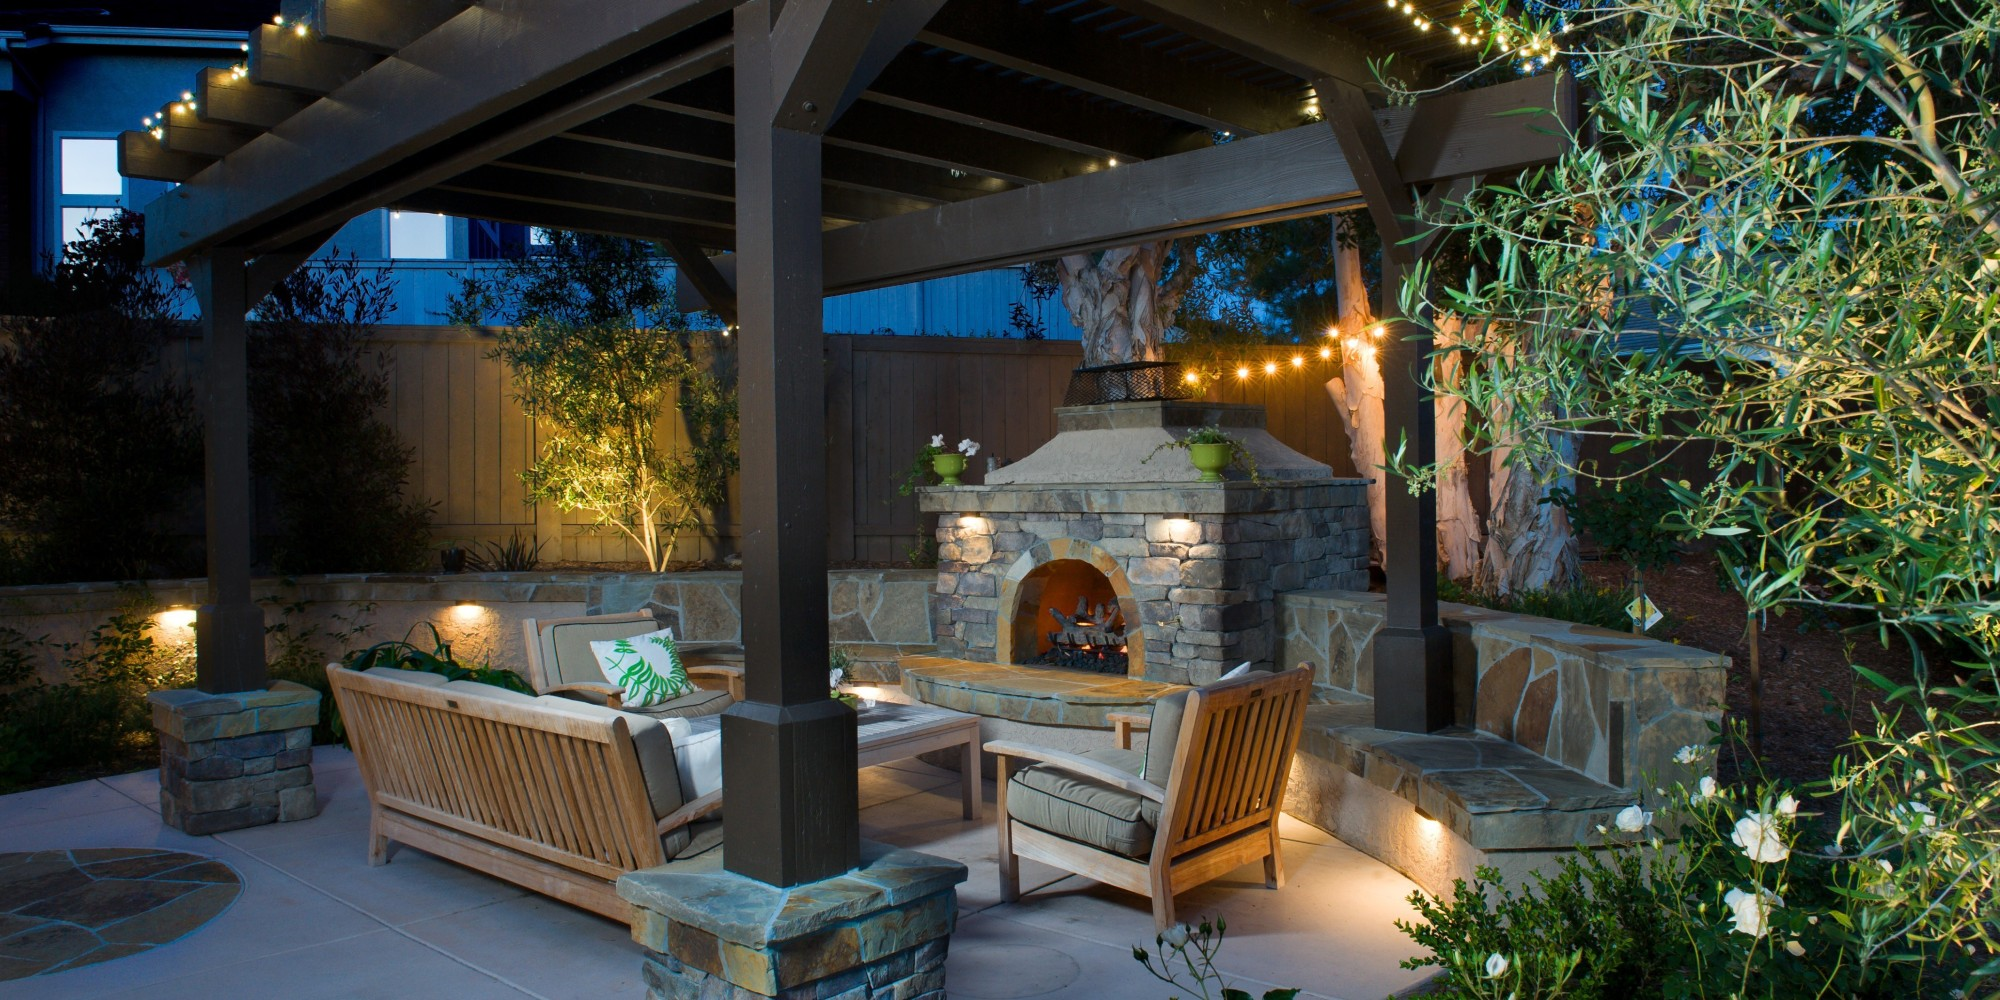 outdoor kitchen patio ideas table set an fireplace is all you need to keep summer going ...